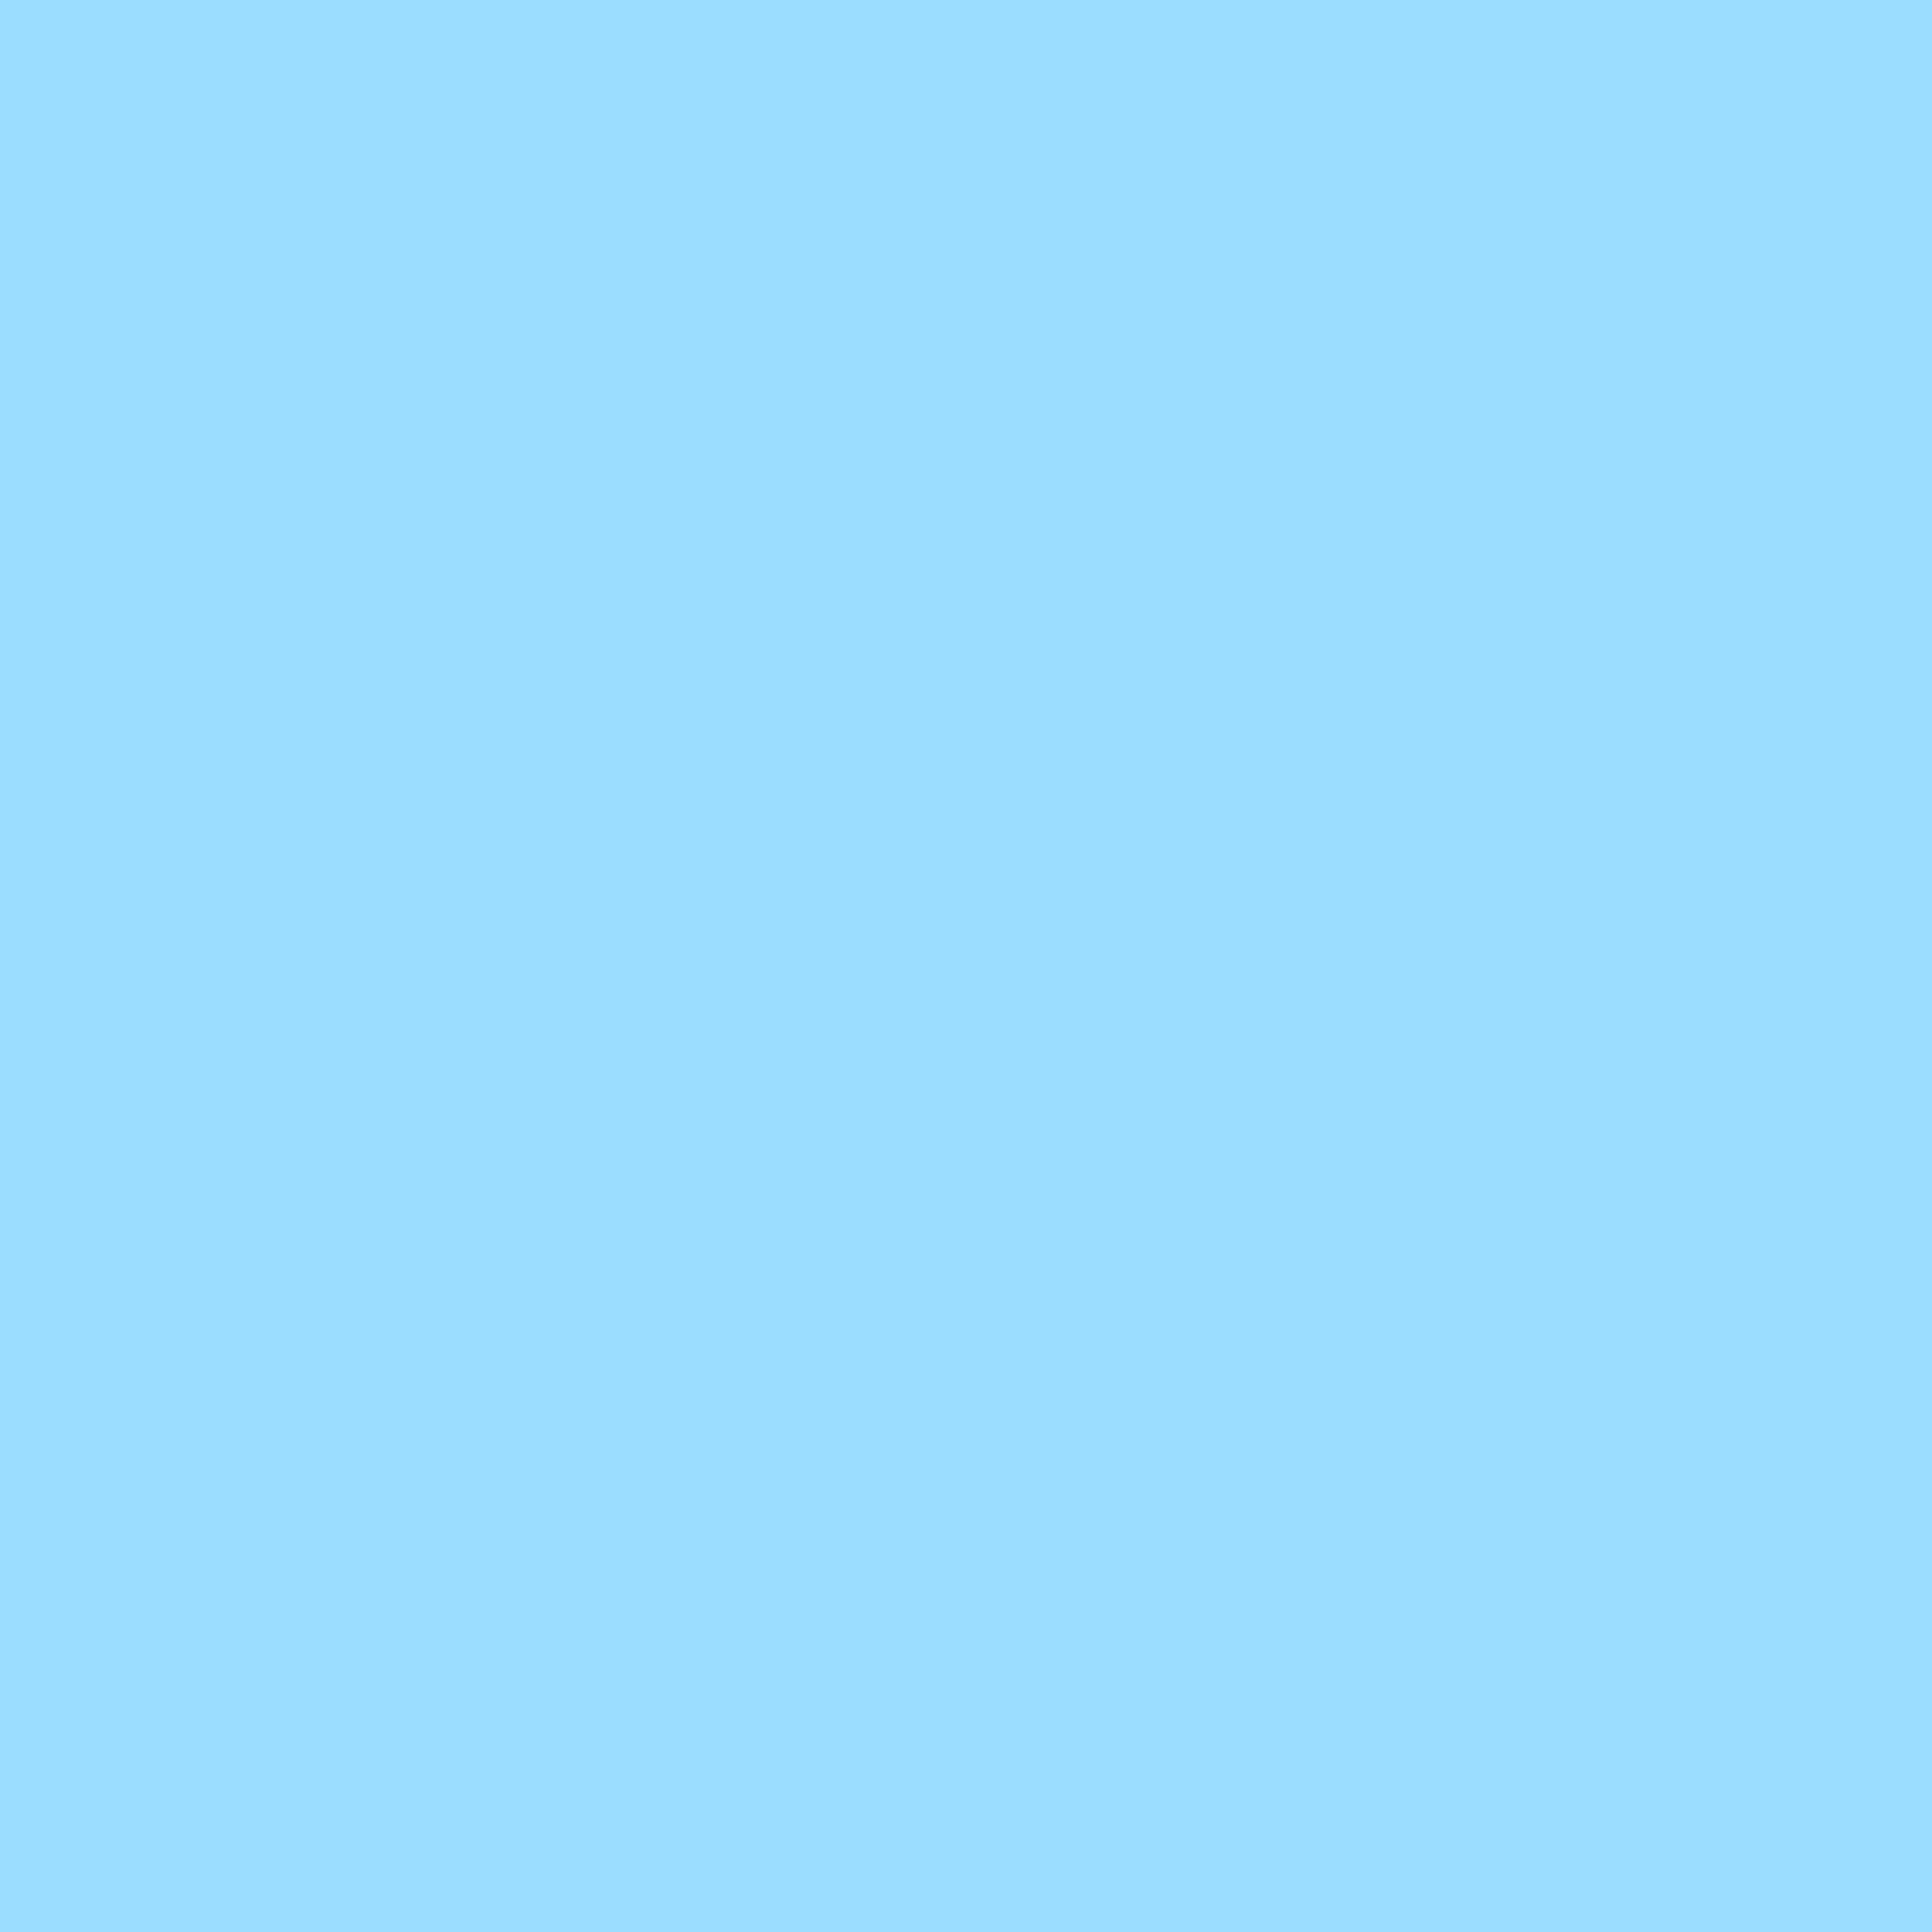 2732x2732 Columbia Blue Solid Color Background